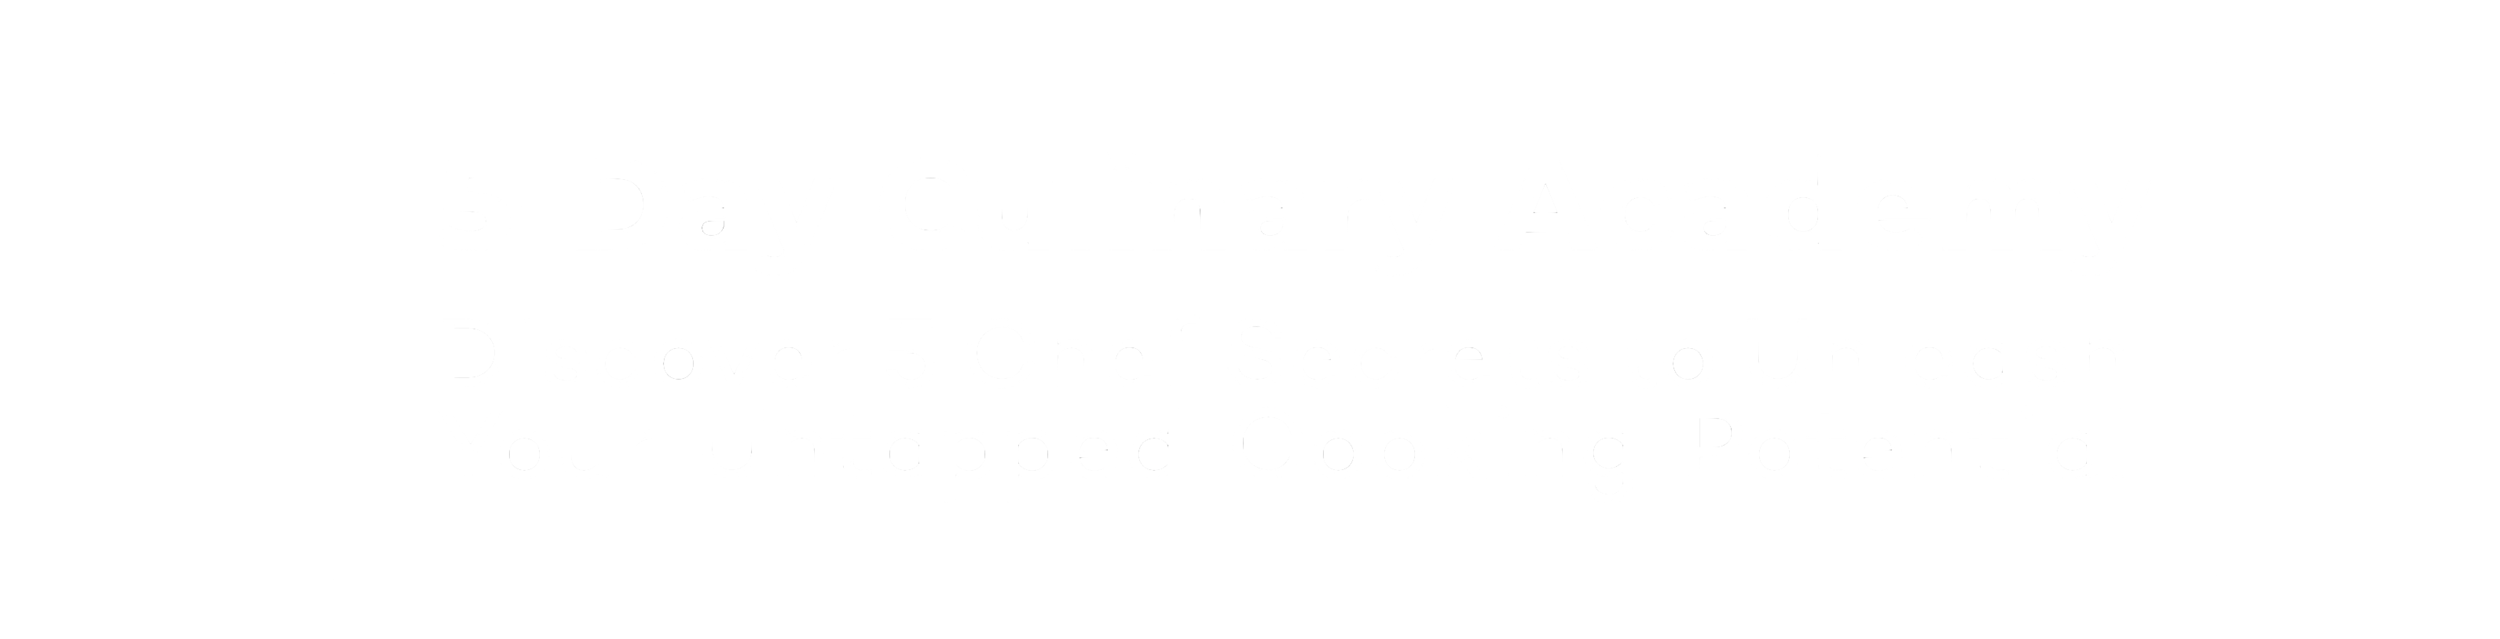 5-Day Culinary Academy Ad (Website).png